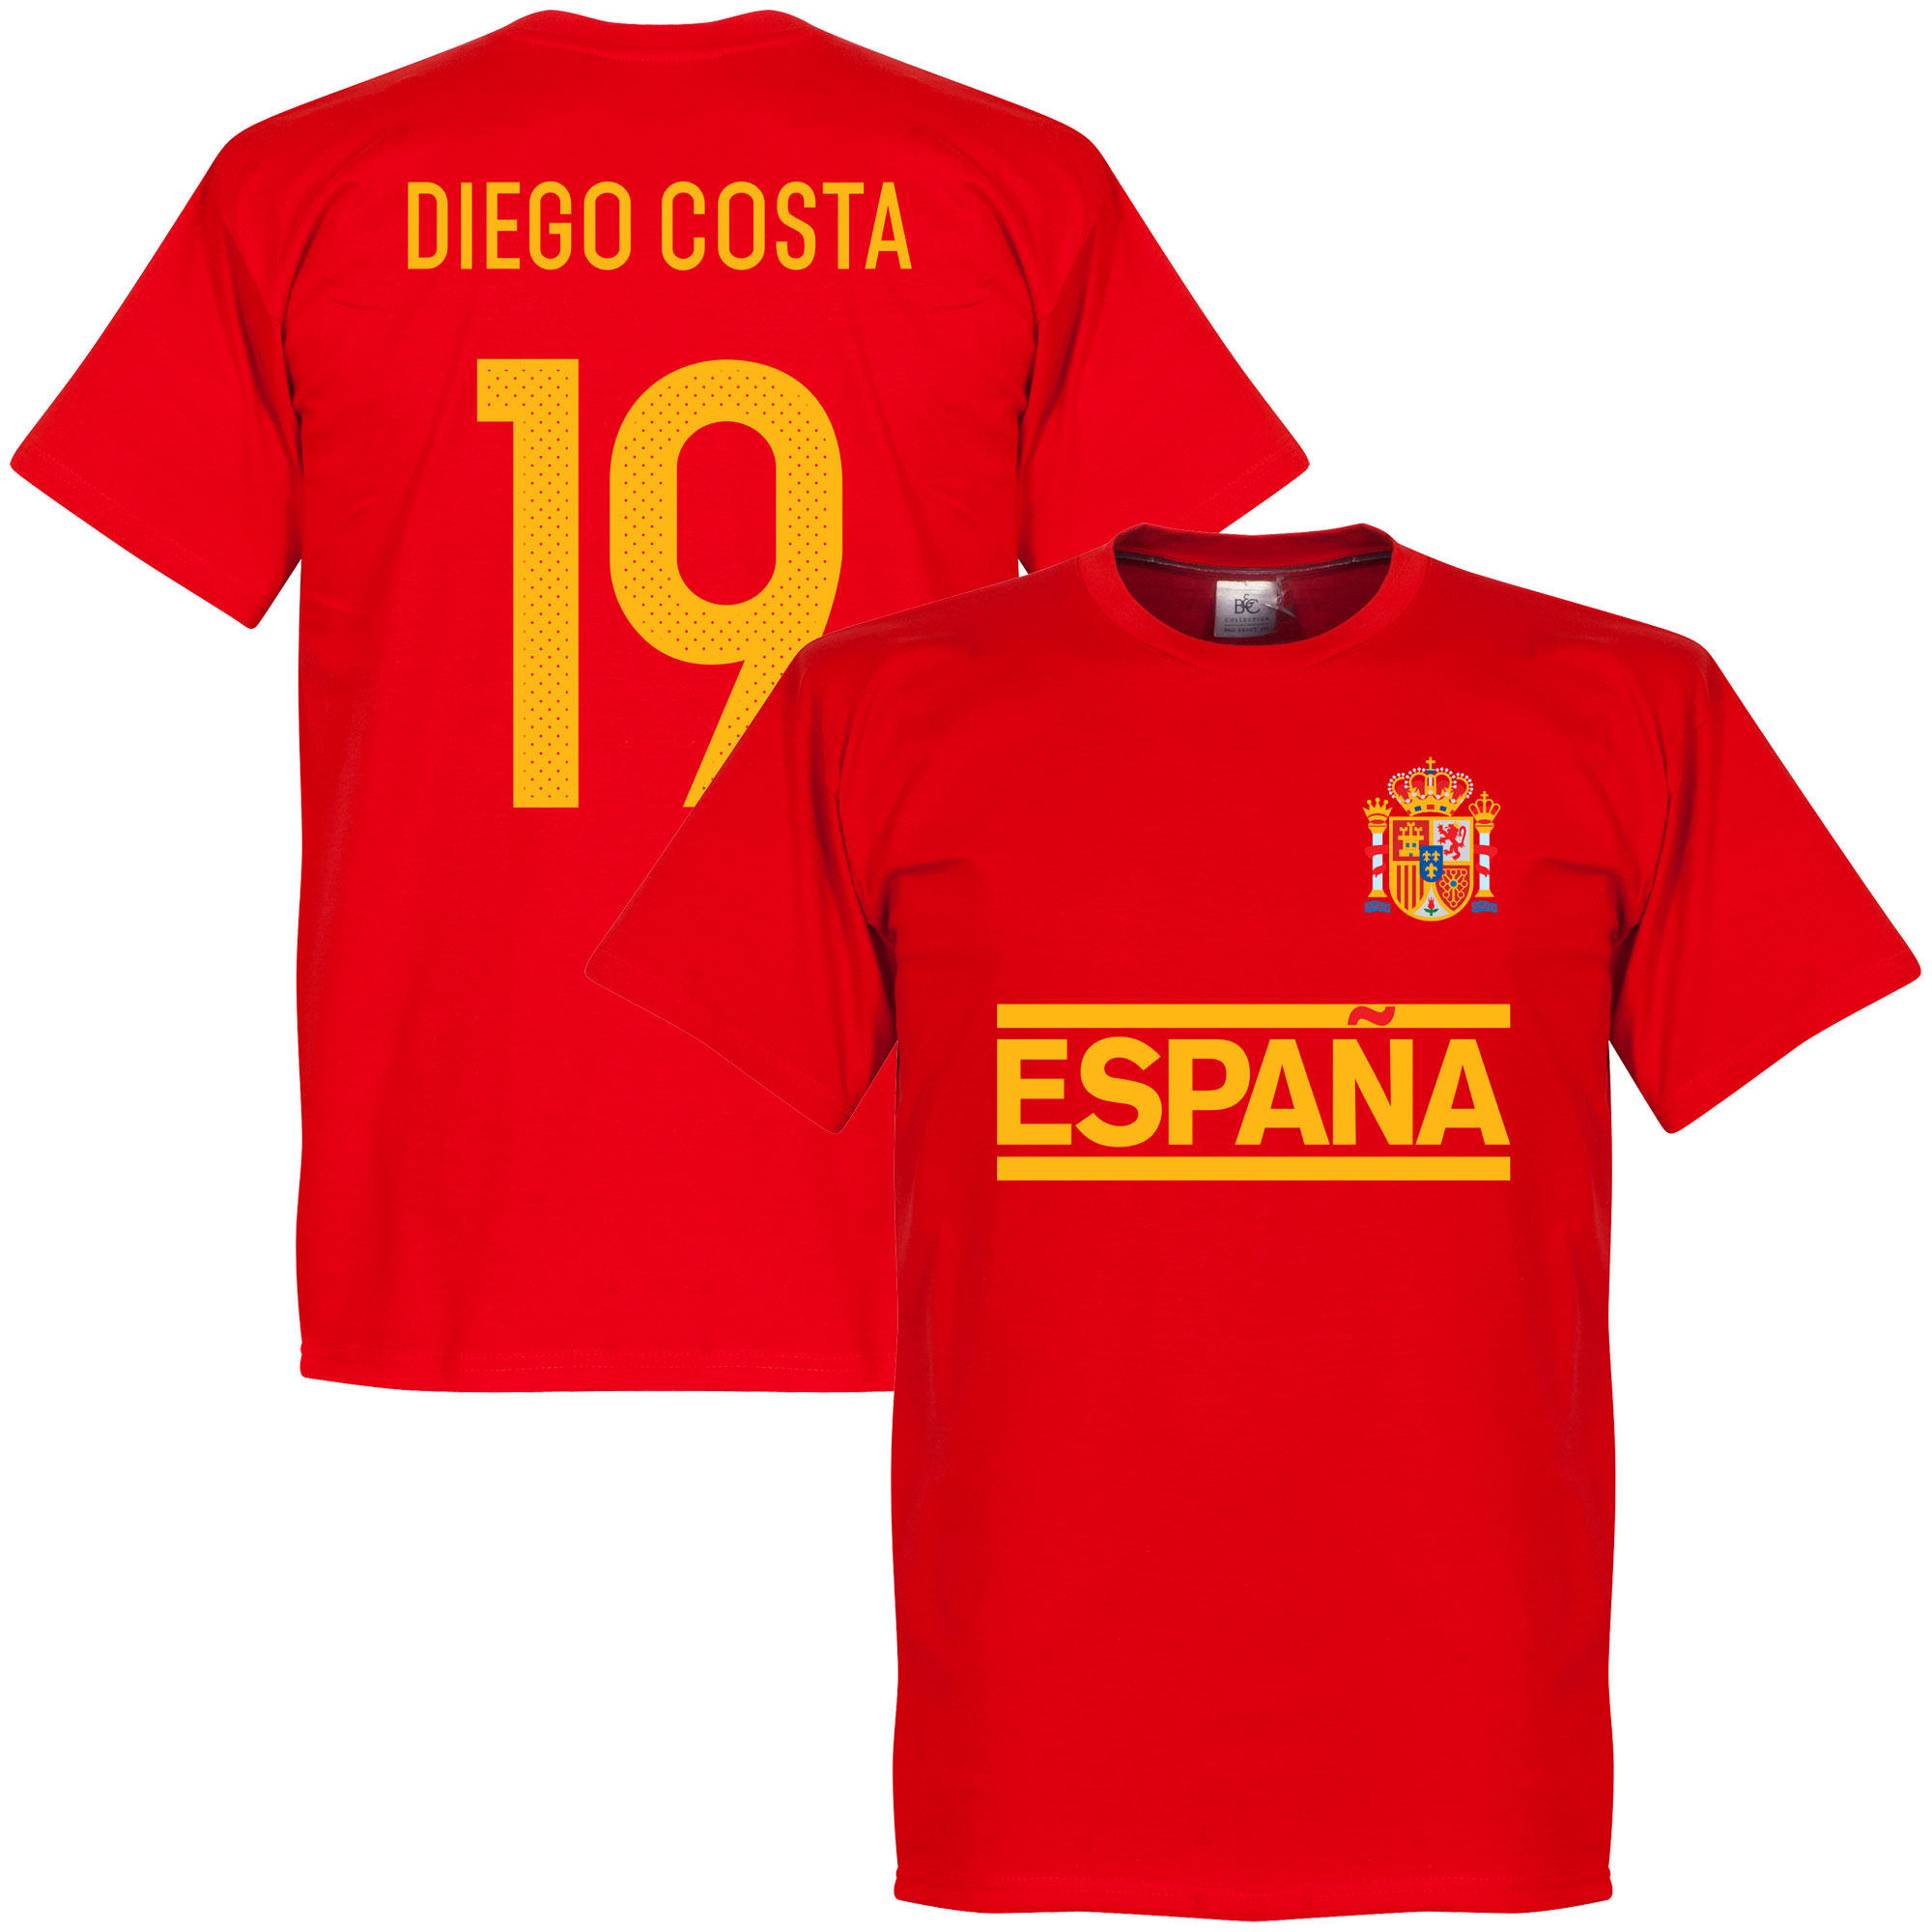 Spain Diego Costa Team Tee - Red - XS